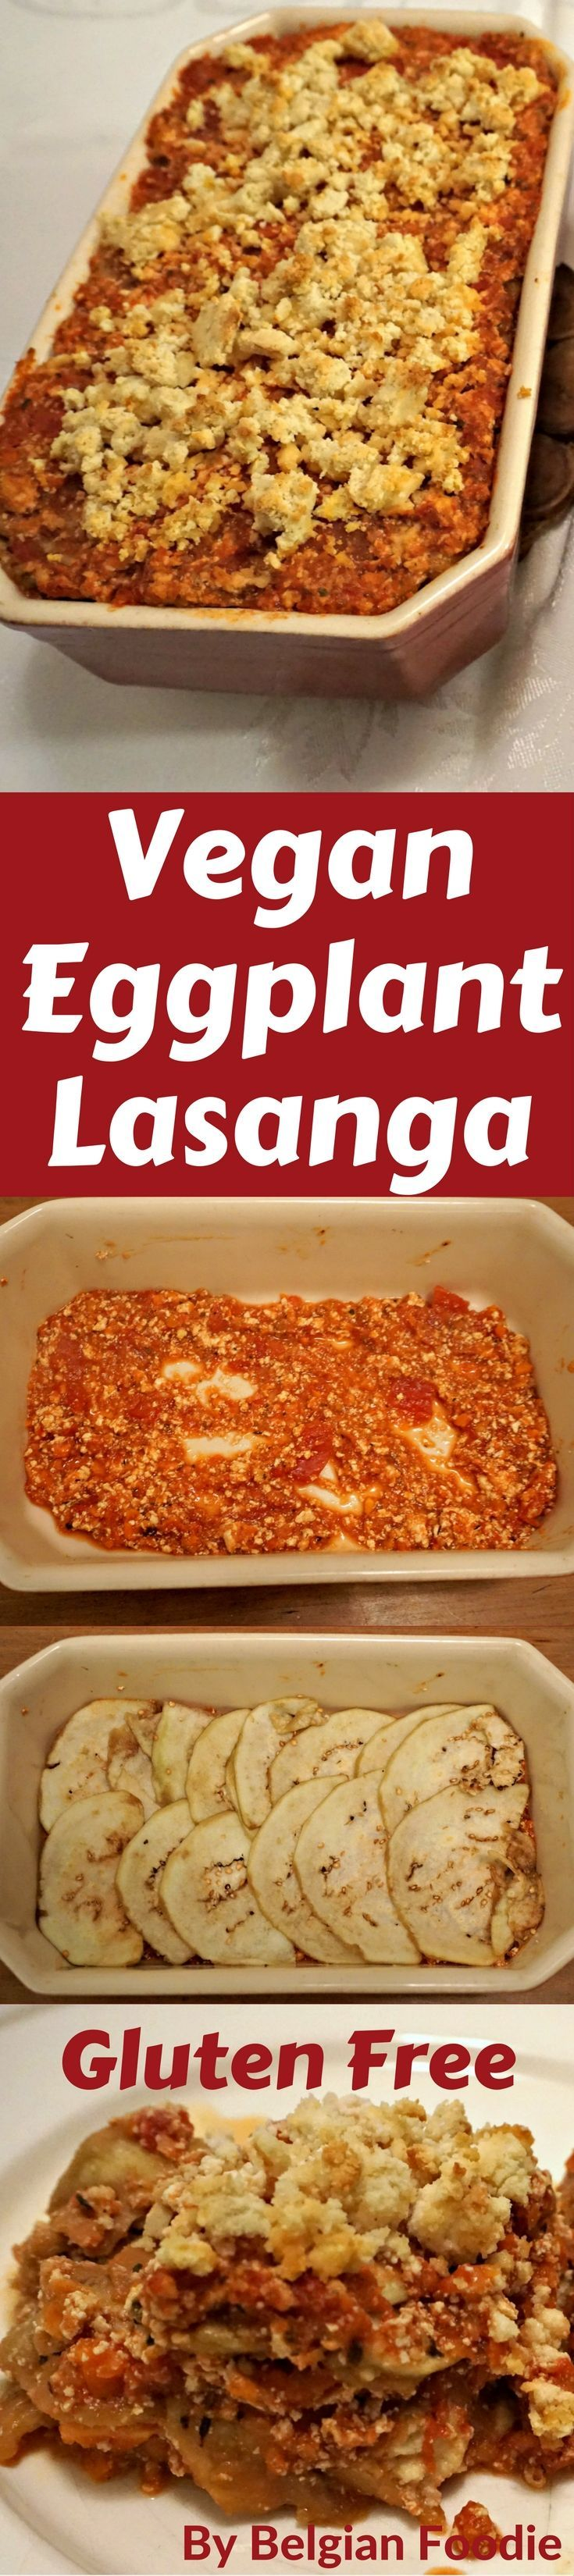 Gluten-Free Vegan Eggplant Lasagna that is as tasty as it is nourishing and healthy!